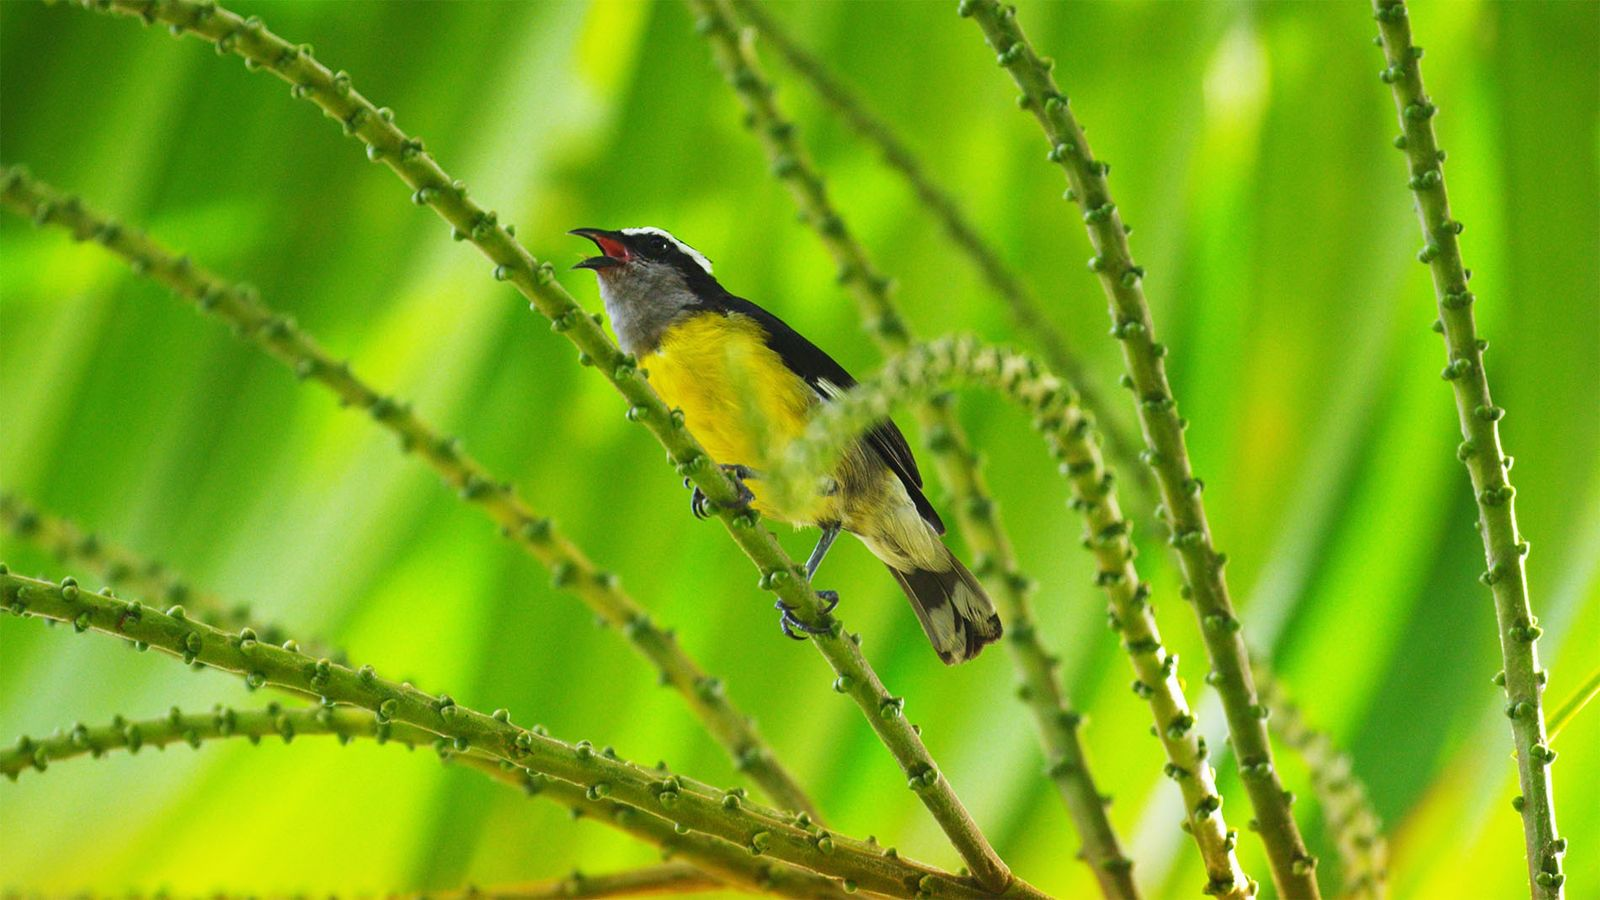 Fiery blooms and dancing birds: Tobago's jungles are full of life